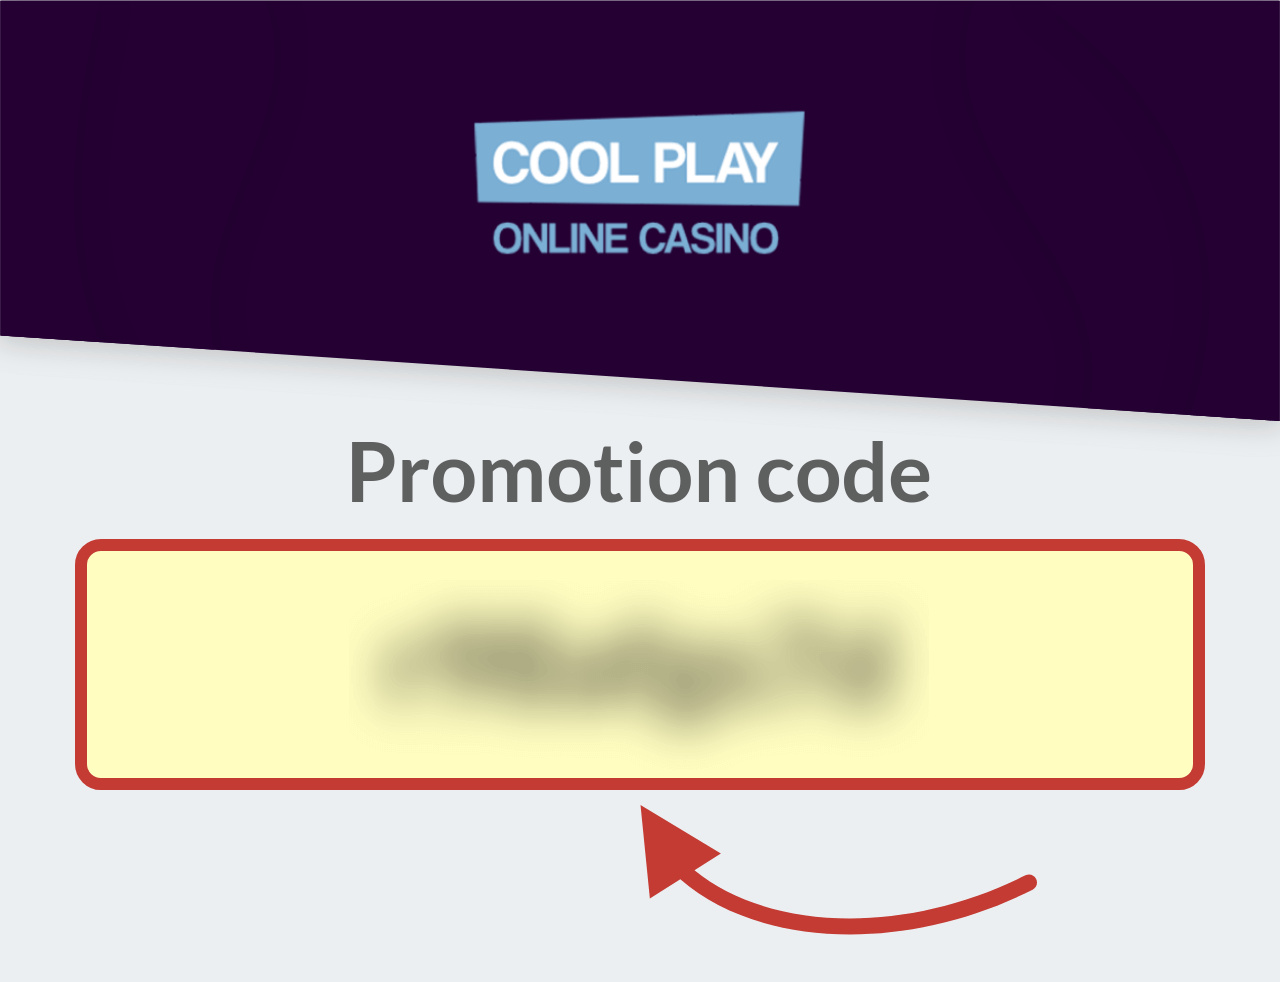 Cool Play Casino Promotion Code